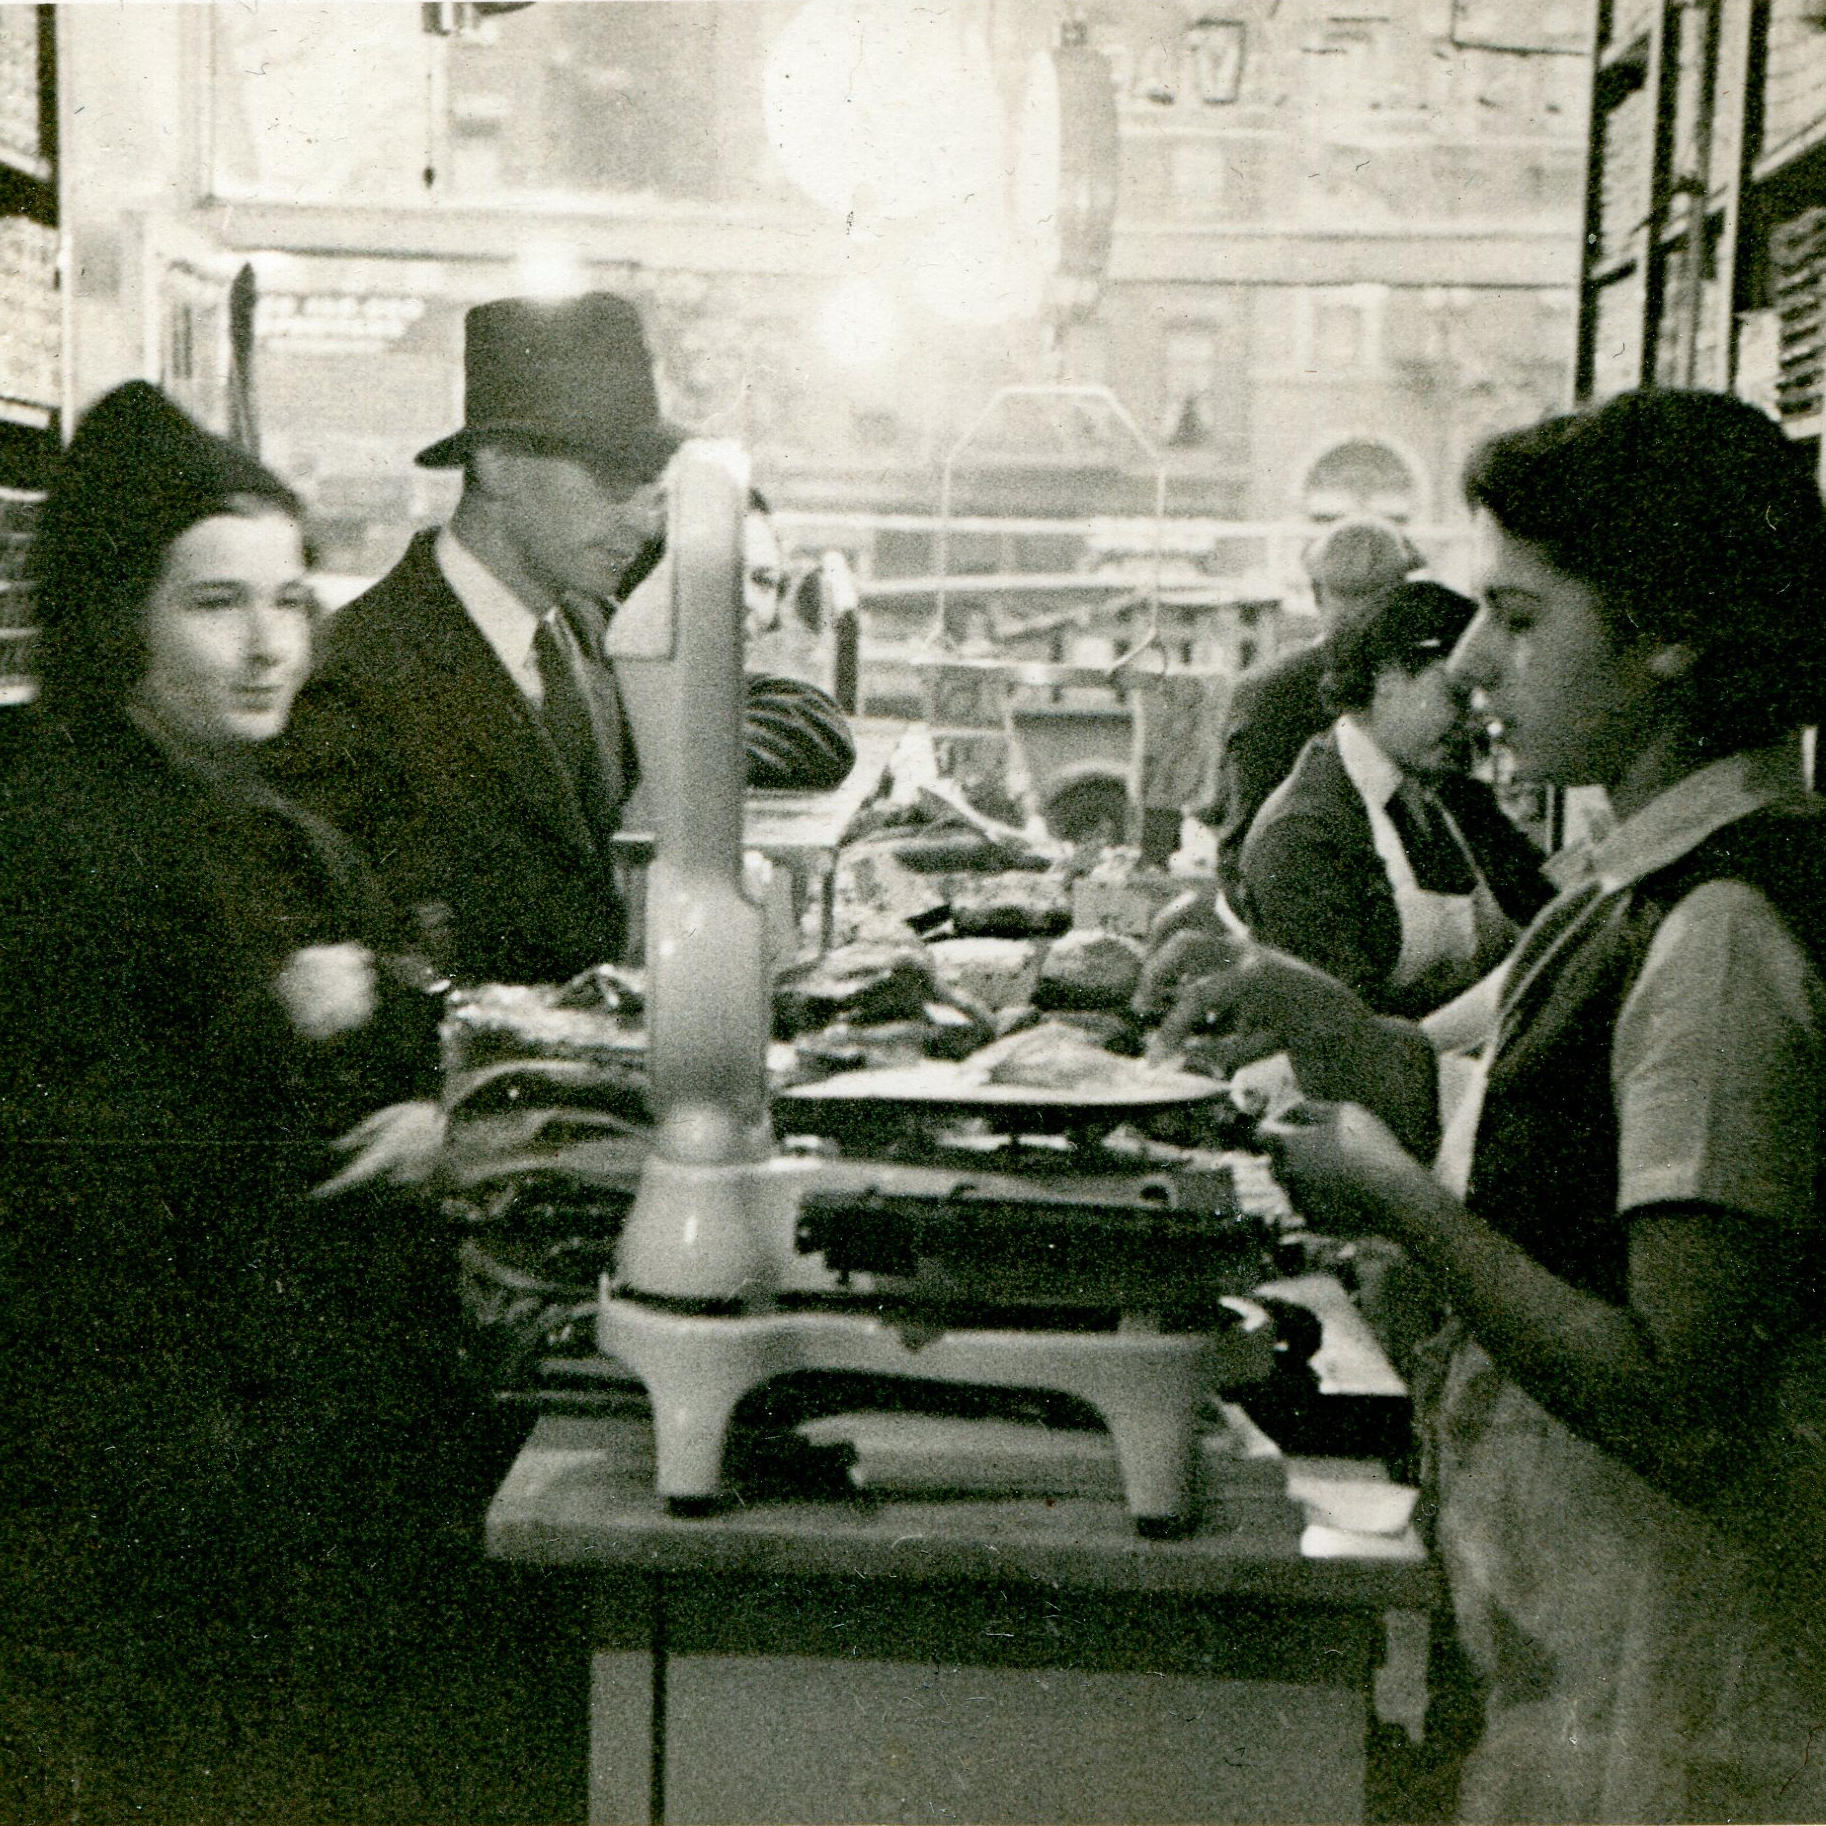 Mark Russ Federman's mother, Anne, serves customers at Russ and Daughters in 1939.